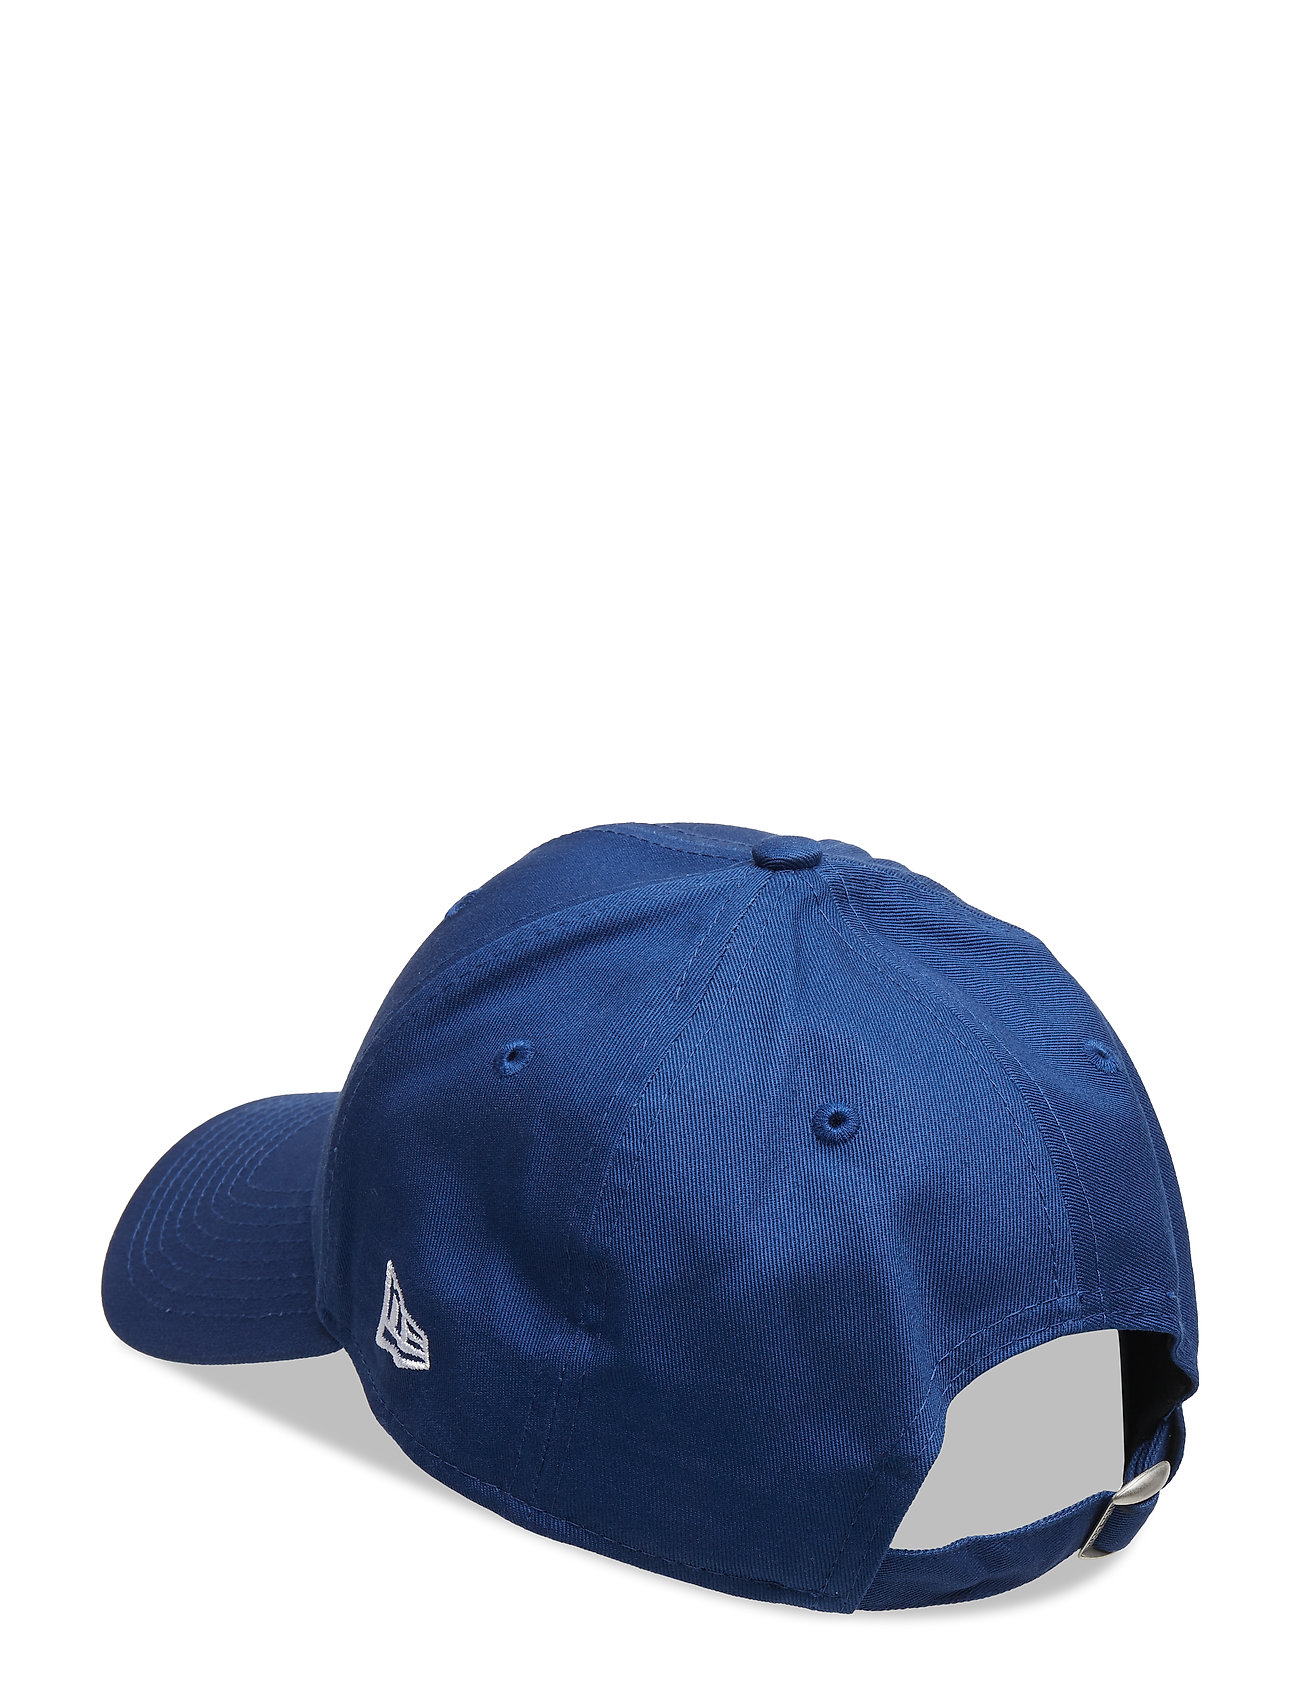 New Era - LEAGUE ESSENTIAL 9FORTY LOSDO - caps - lrywhi - 1